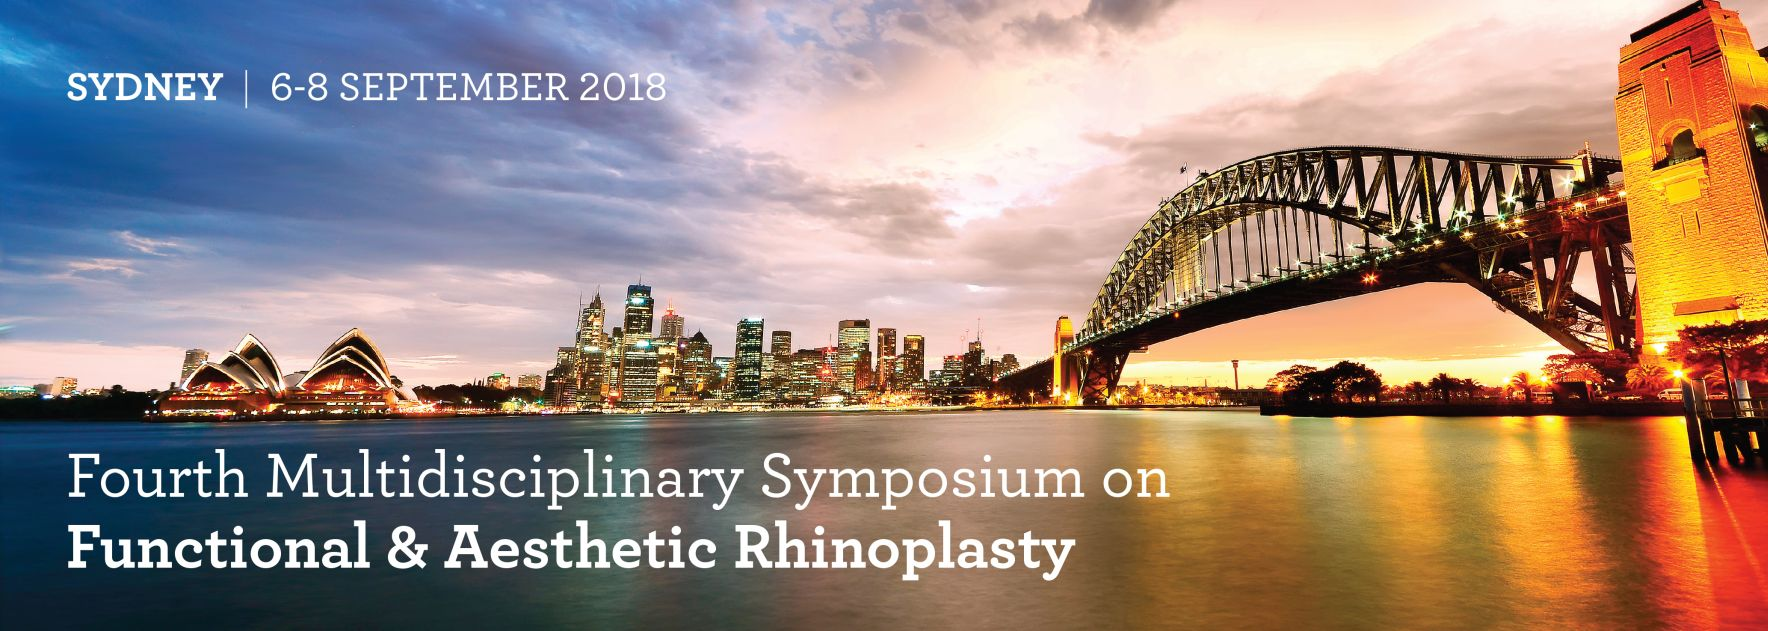 Masters' Symposium on Blepharoplasty and Facial Rejuvenation